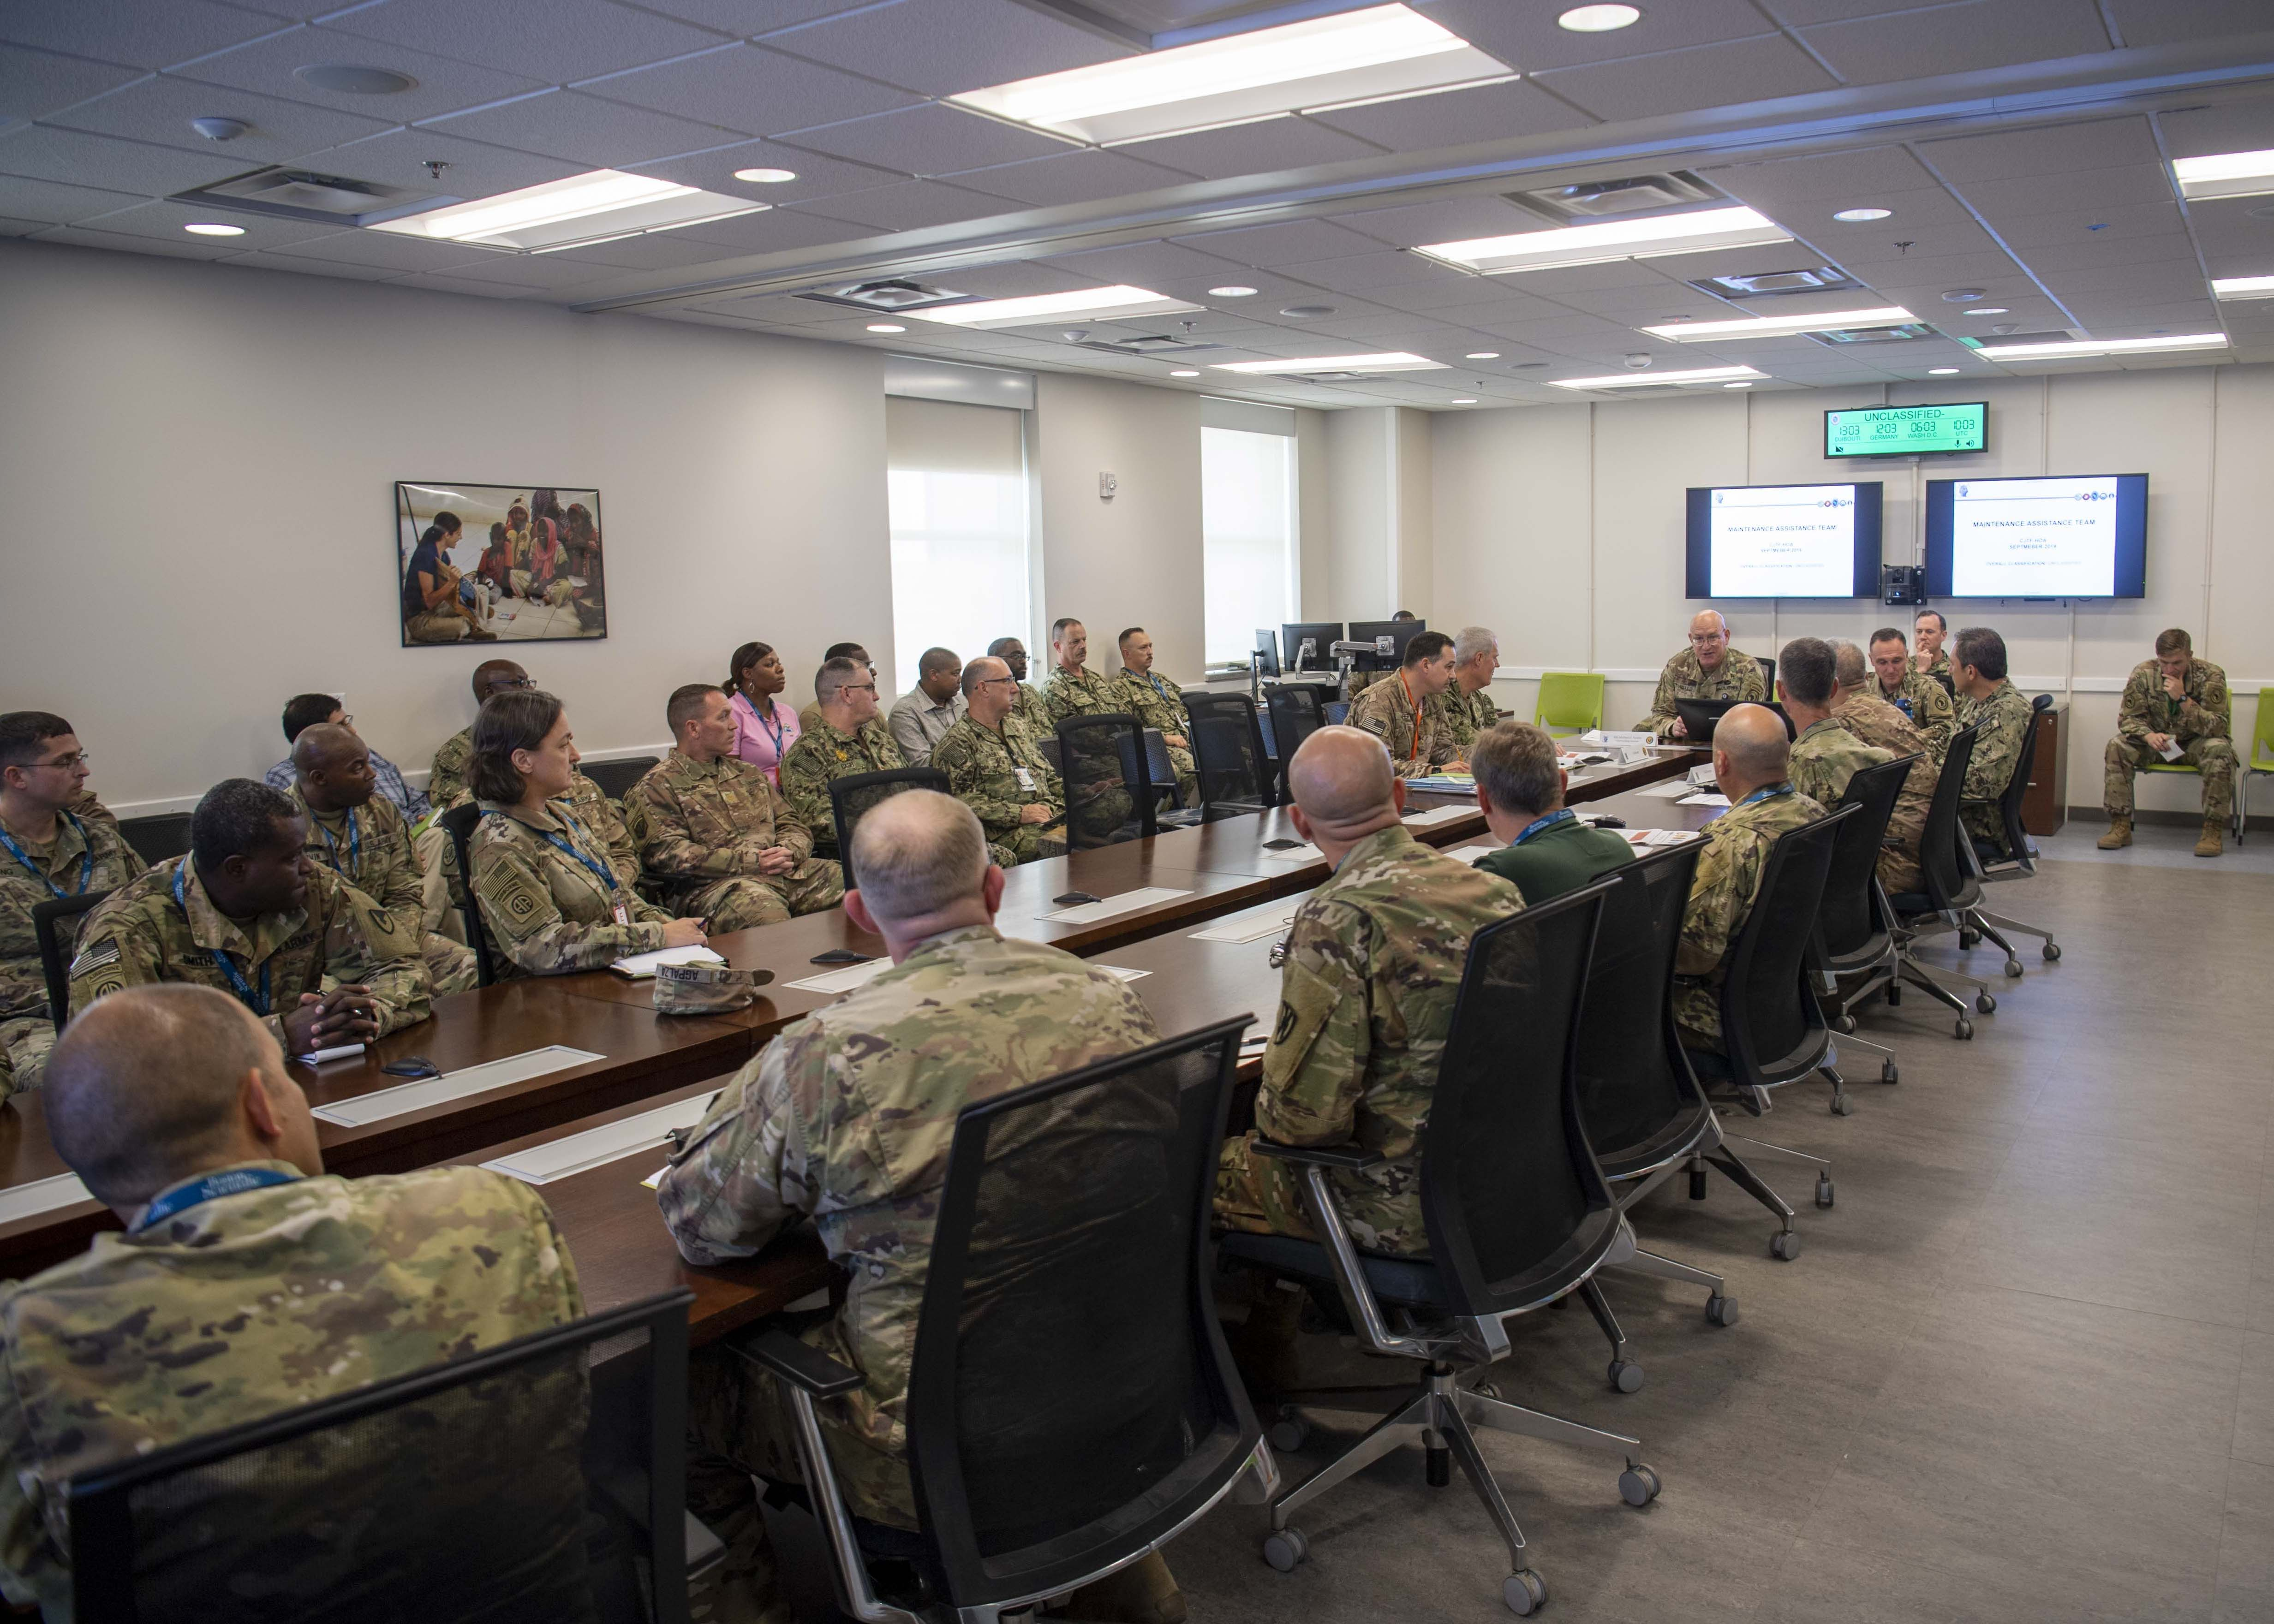 U.S. Army Maj. Gen. Michael Turello, commanding general, Combined Joint Task Force-Horn of Africa (CJTF-HOA), meets with CJTF-HOA leadership and a maintenance assistance and inspection team (MAIT) at Camp Lemonnier, Djibouti, Sept. 16, 2019. MAITs are focused on finding solutions to logistics and maintenance challenges. (U.S. Air Force photo by Staff Sgt. J.D. Strong II)